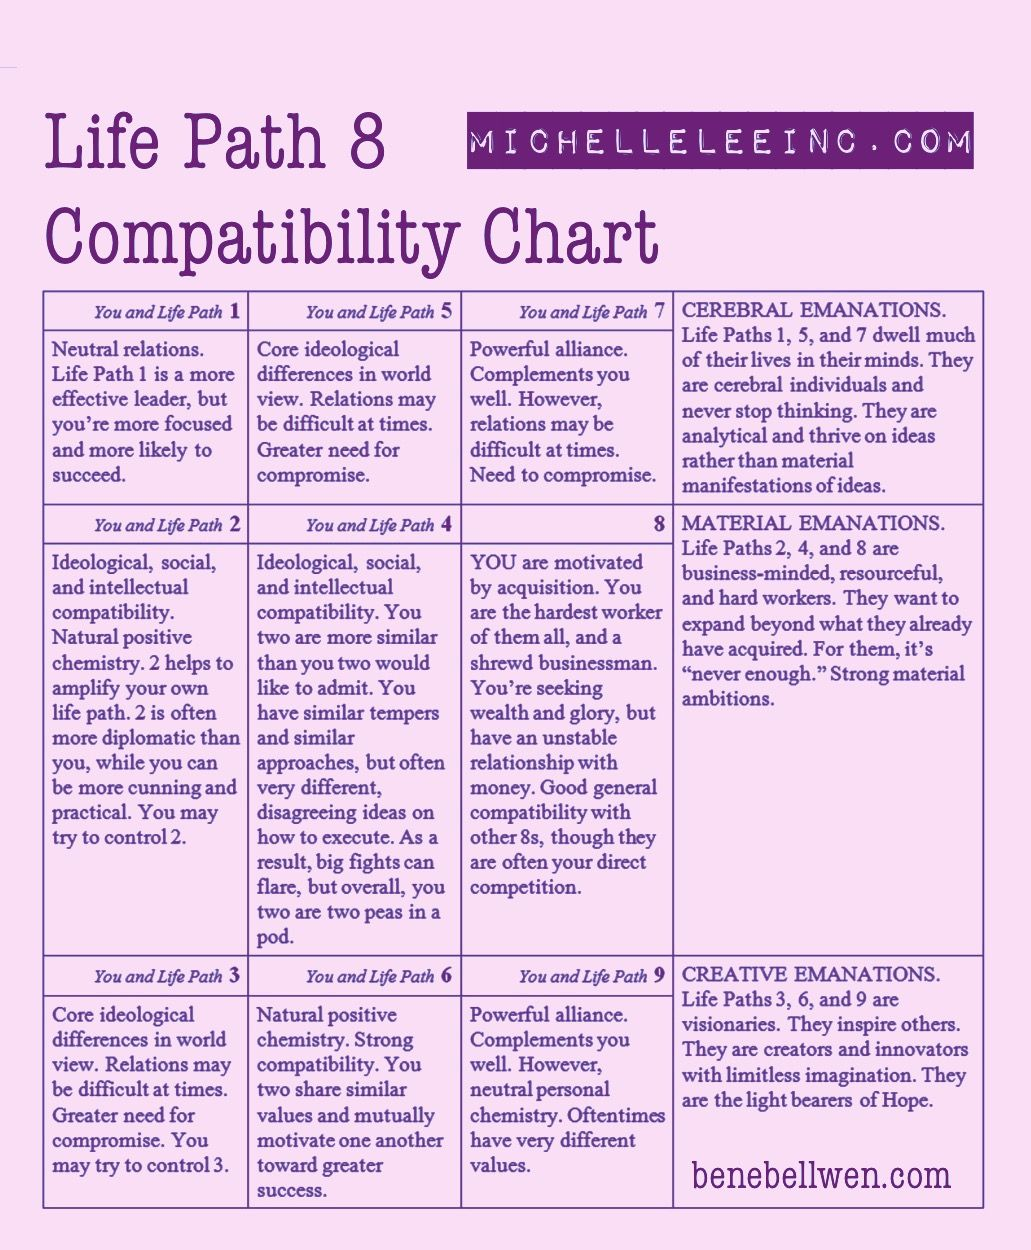 Numerology lifepath 8 love compatibility chart numerology